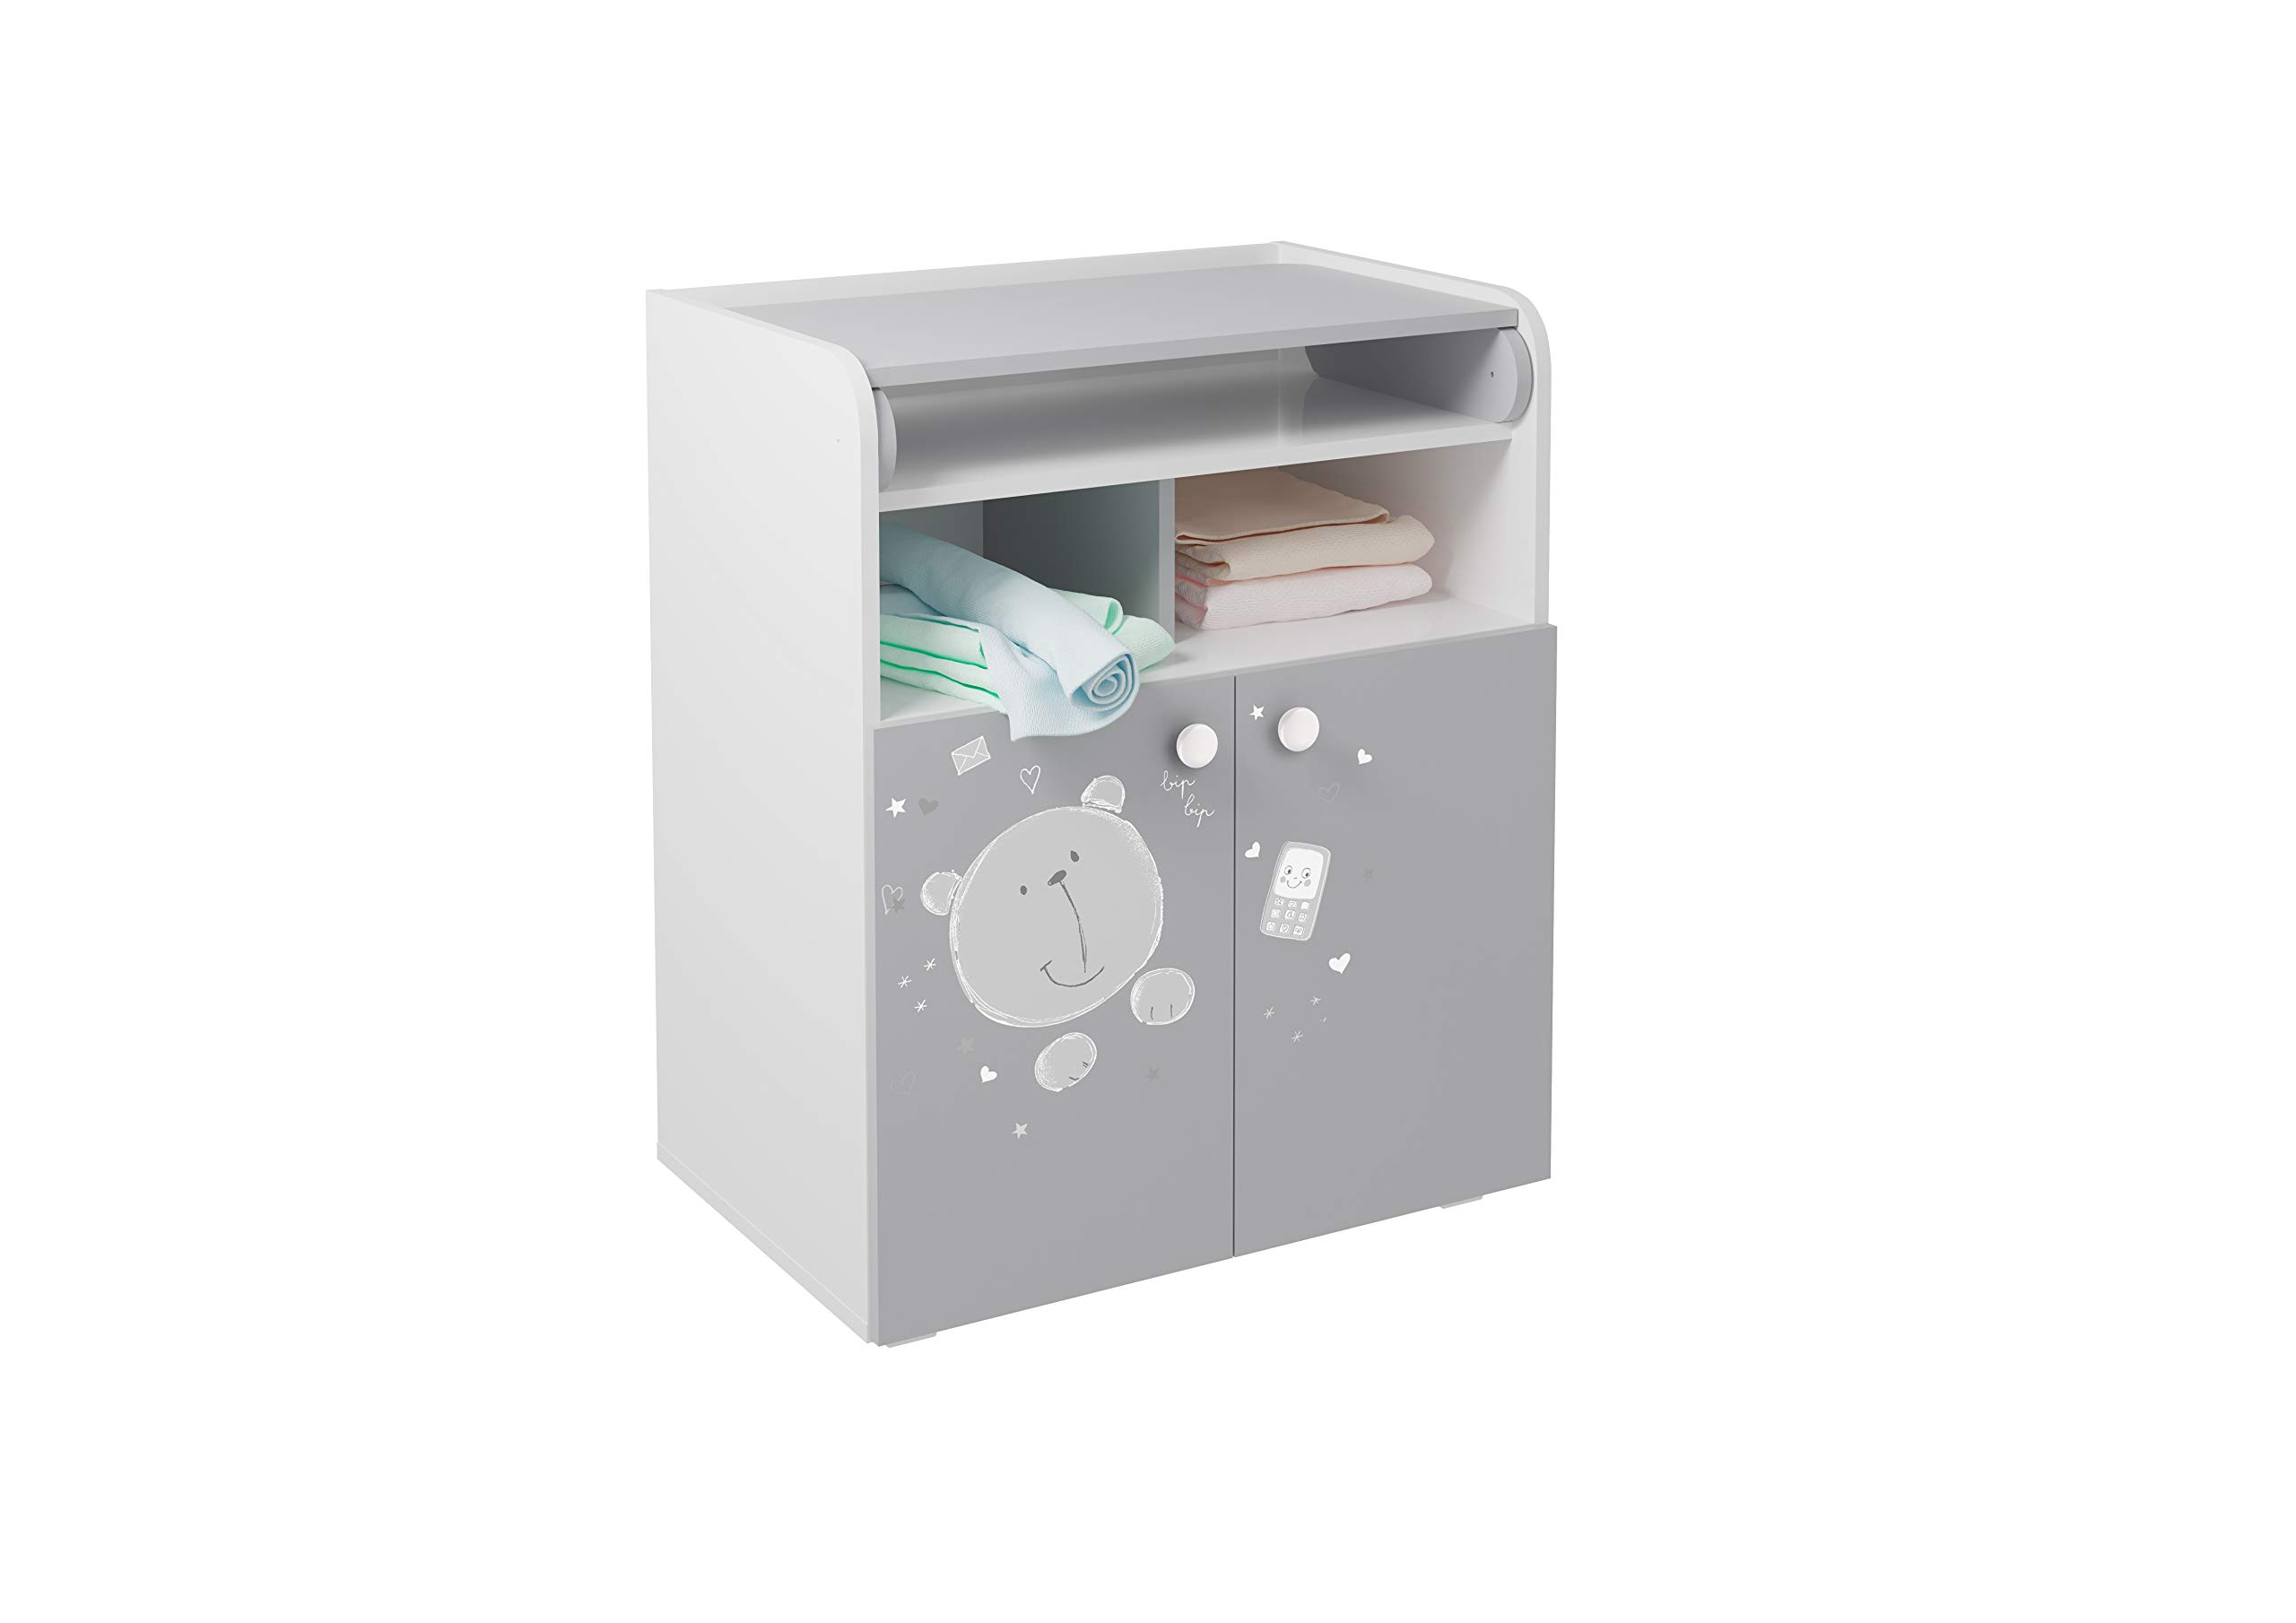 Polini French, Drawer Unit 1270, Teddy Print, White/Grey Kidsaw Dimensions (LxWxH): 47 x 70 x 86 cm French design Detachable changing mat leaves no marks on the dresser 1